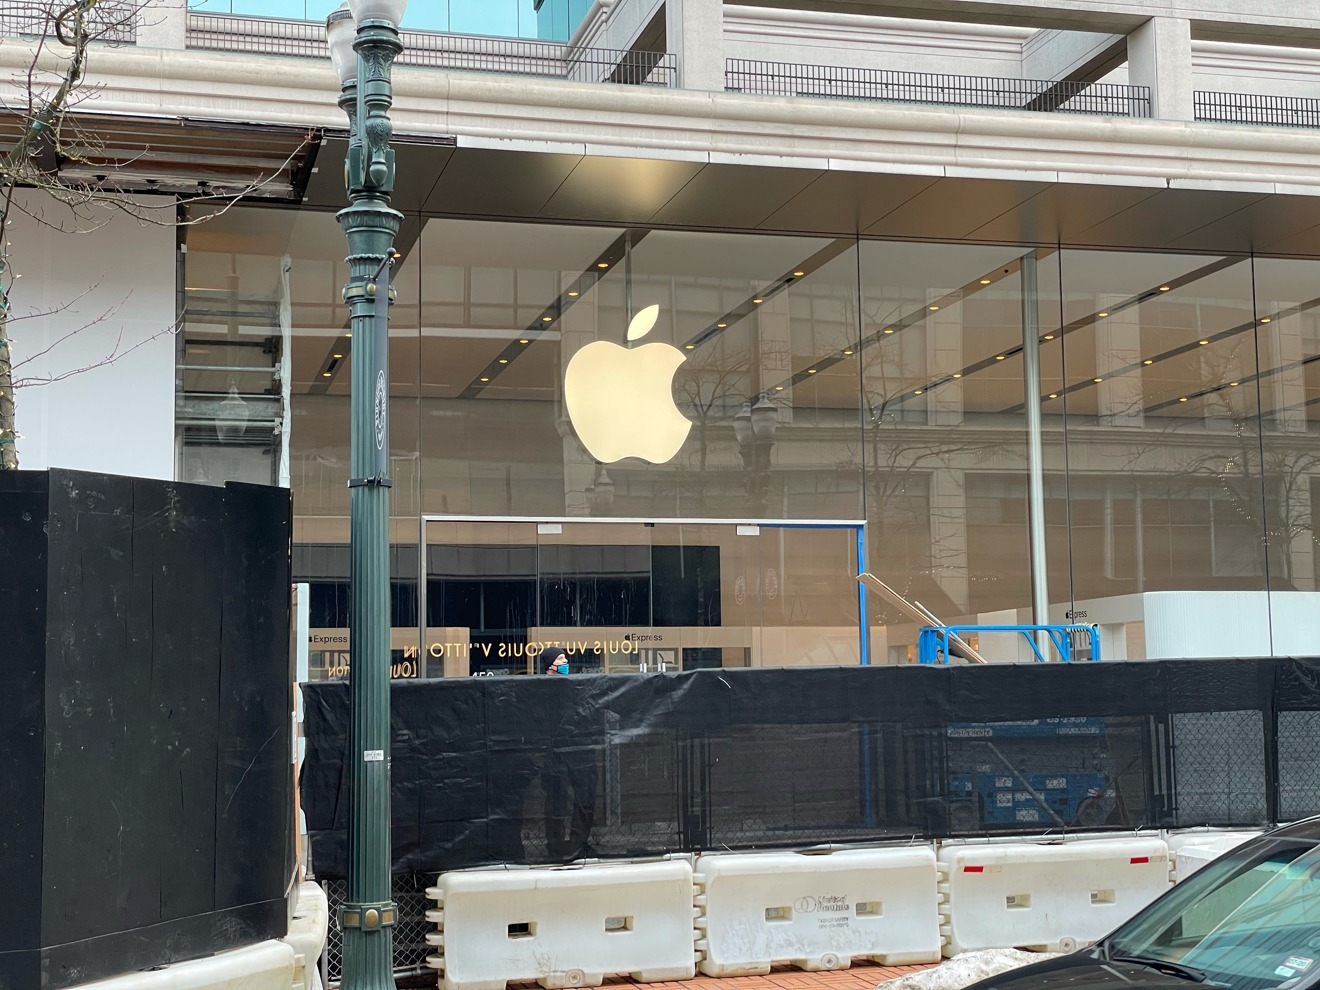 Apple Pioneer Place's Express kiosks are installed [via